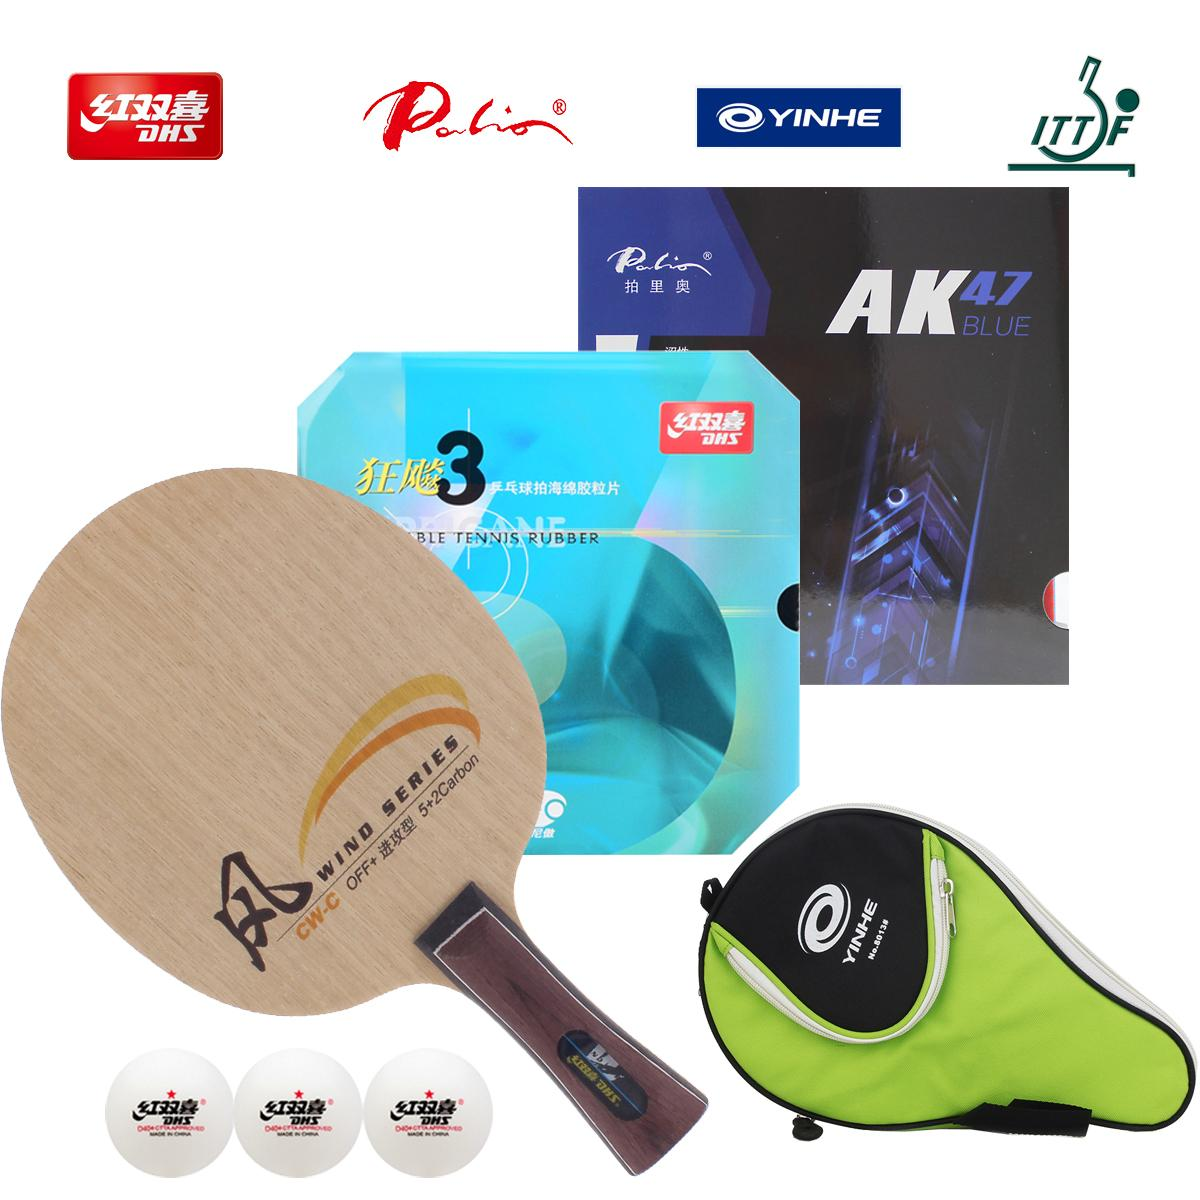 Dhs Cw-C Carbon Table Tennis Racket Bat Blade Dhs Hurricane-3 Neo Table Tennis Racket Bat Rubber Sheet Black Palio Blue Sponge Red Rubber Table Tennis Racket Bat Rubber Sheet 1xyinhe 8013 Green Bat Bag By Lovacool Store-Love Via Cool Shopping Mall.